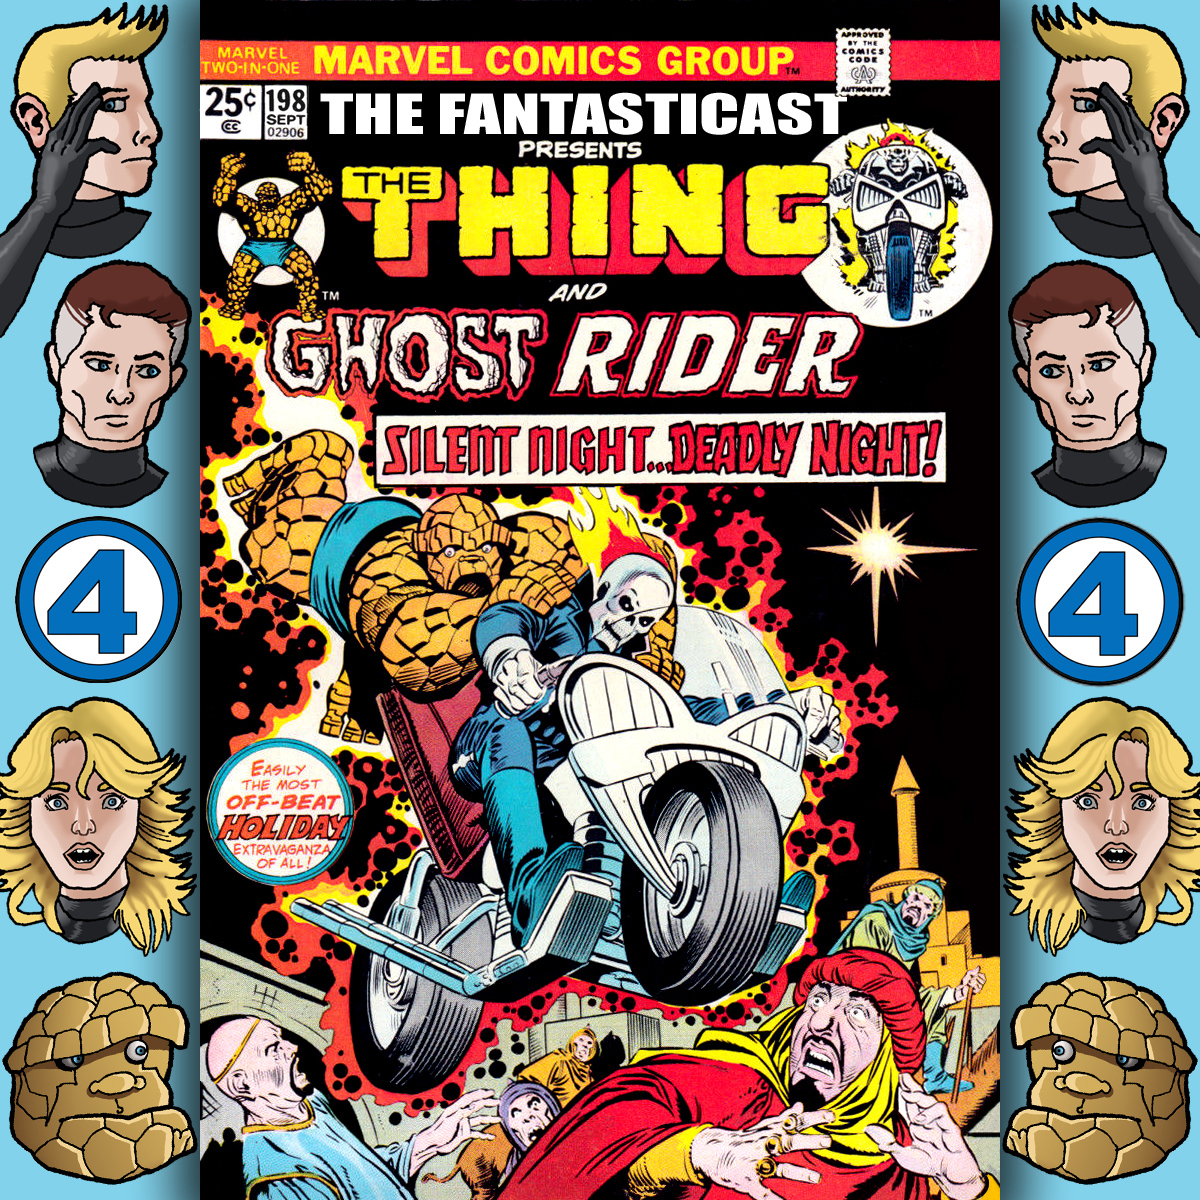 The Fantasticast Episode 198